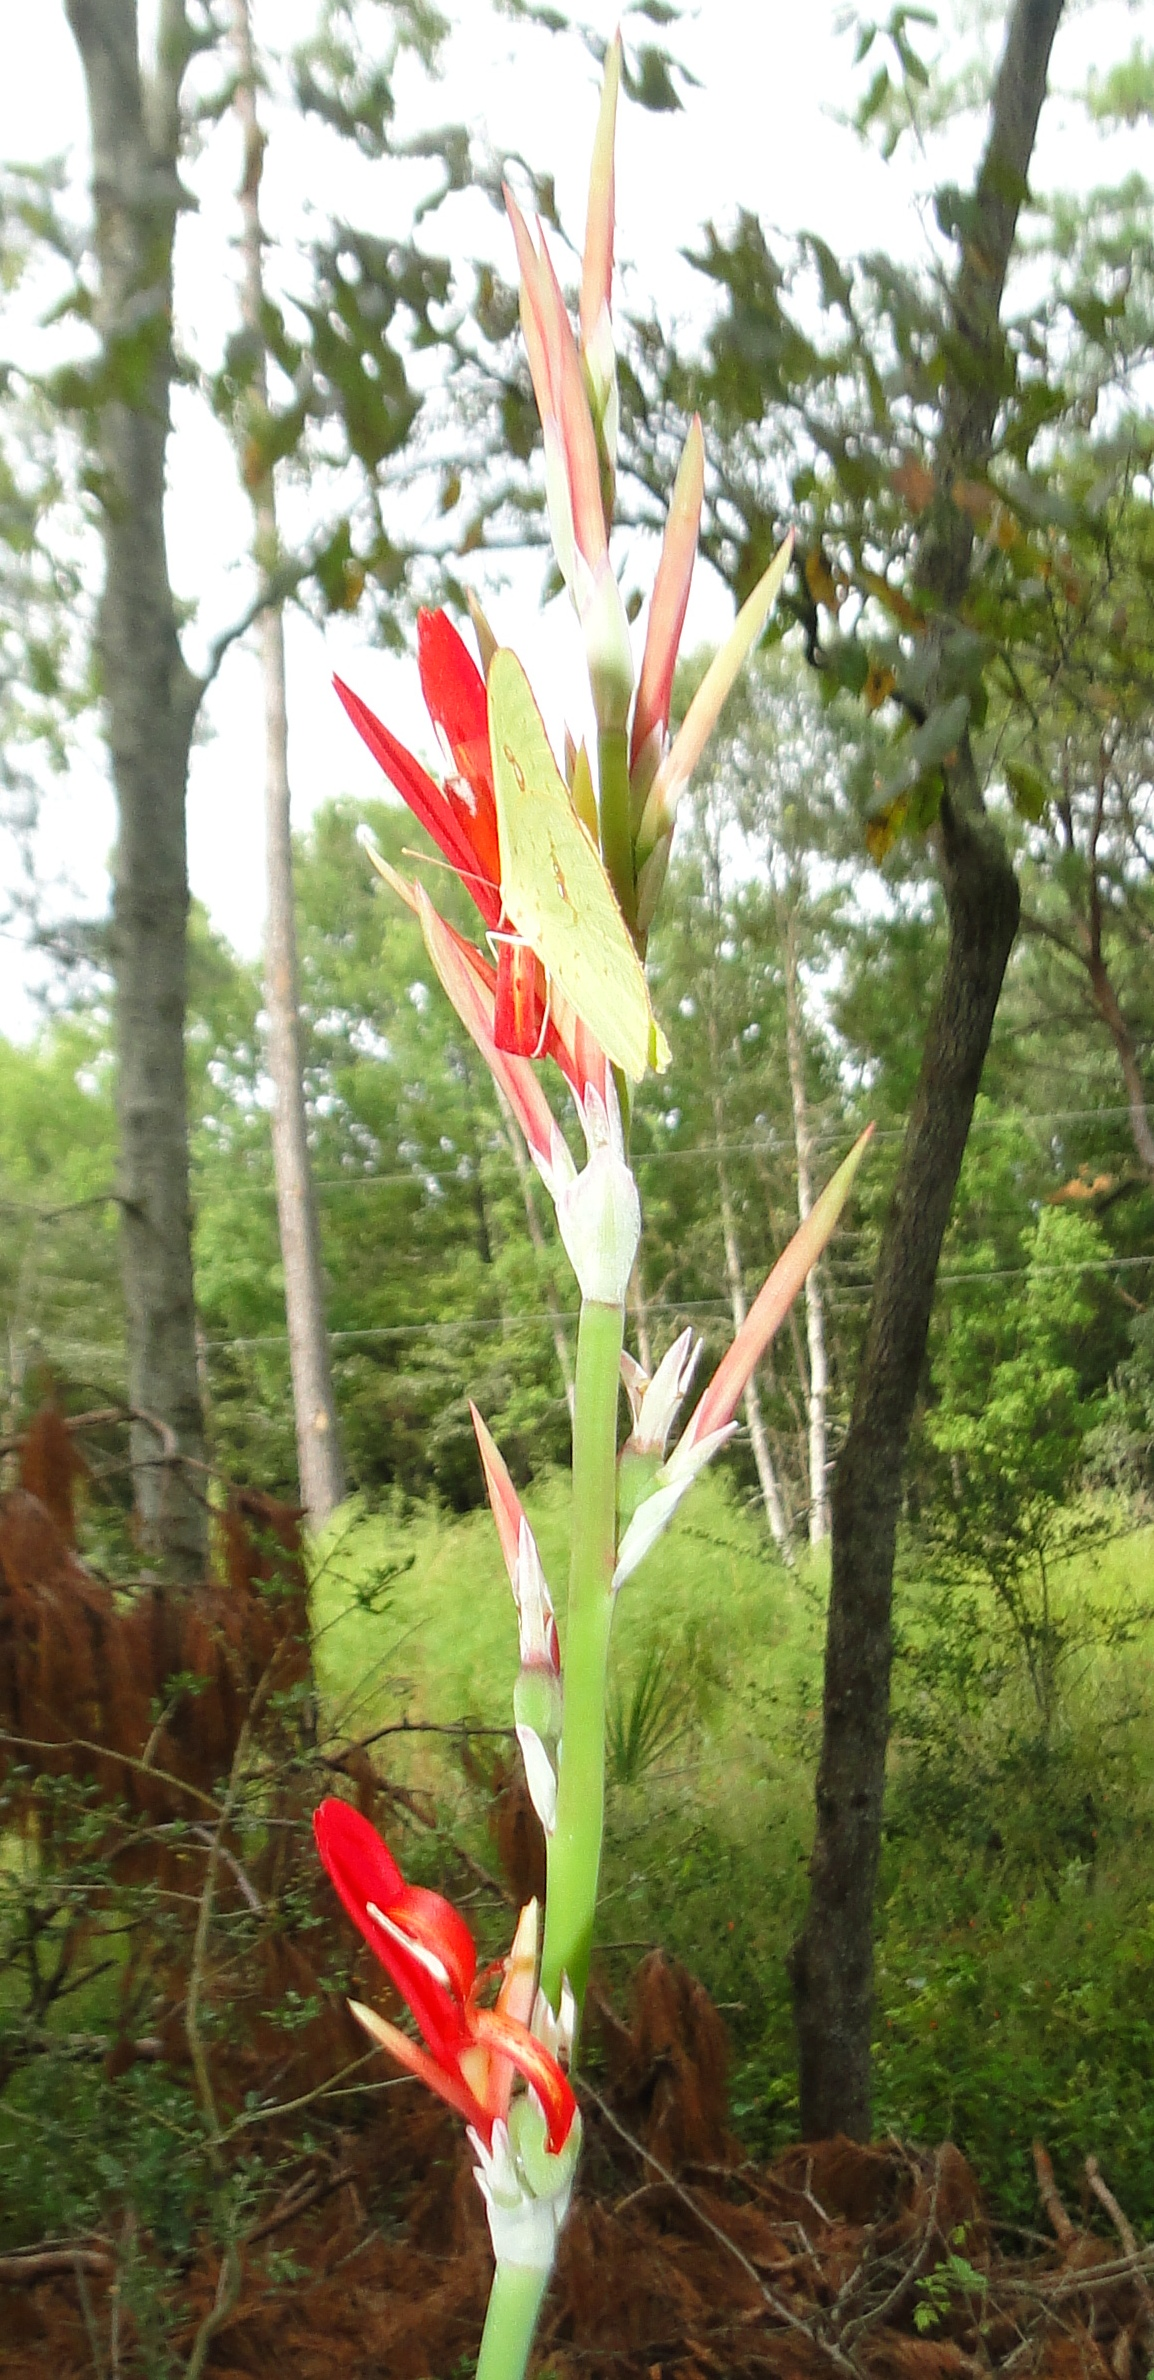 Image Related To Canna indica (Indian shot/Platanillo/Achira)